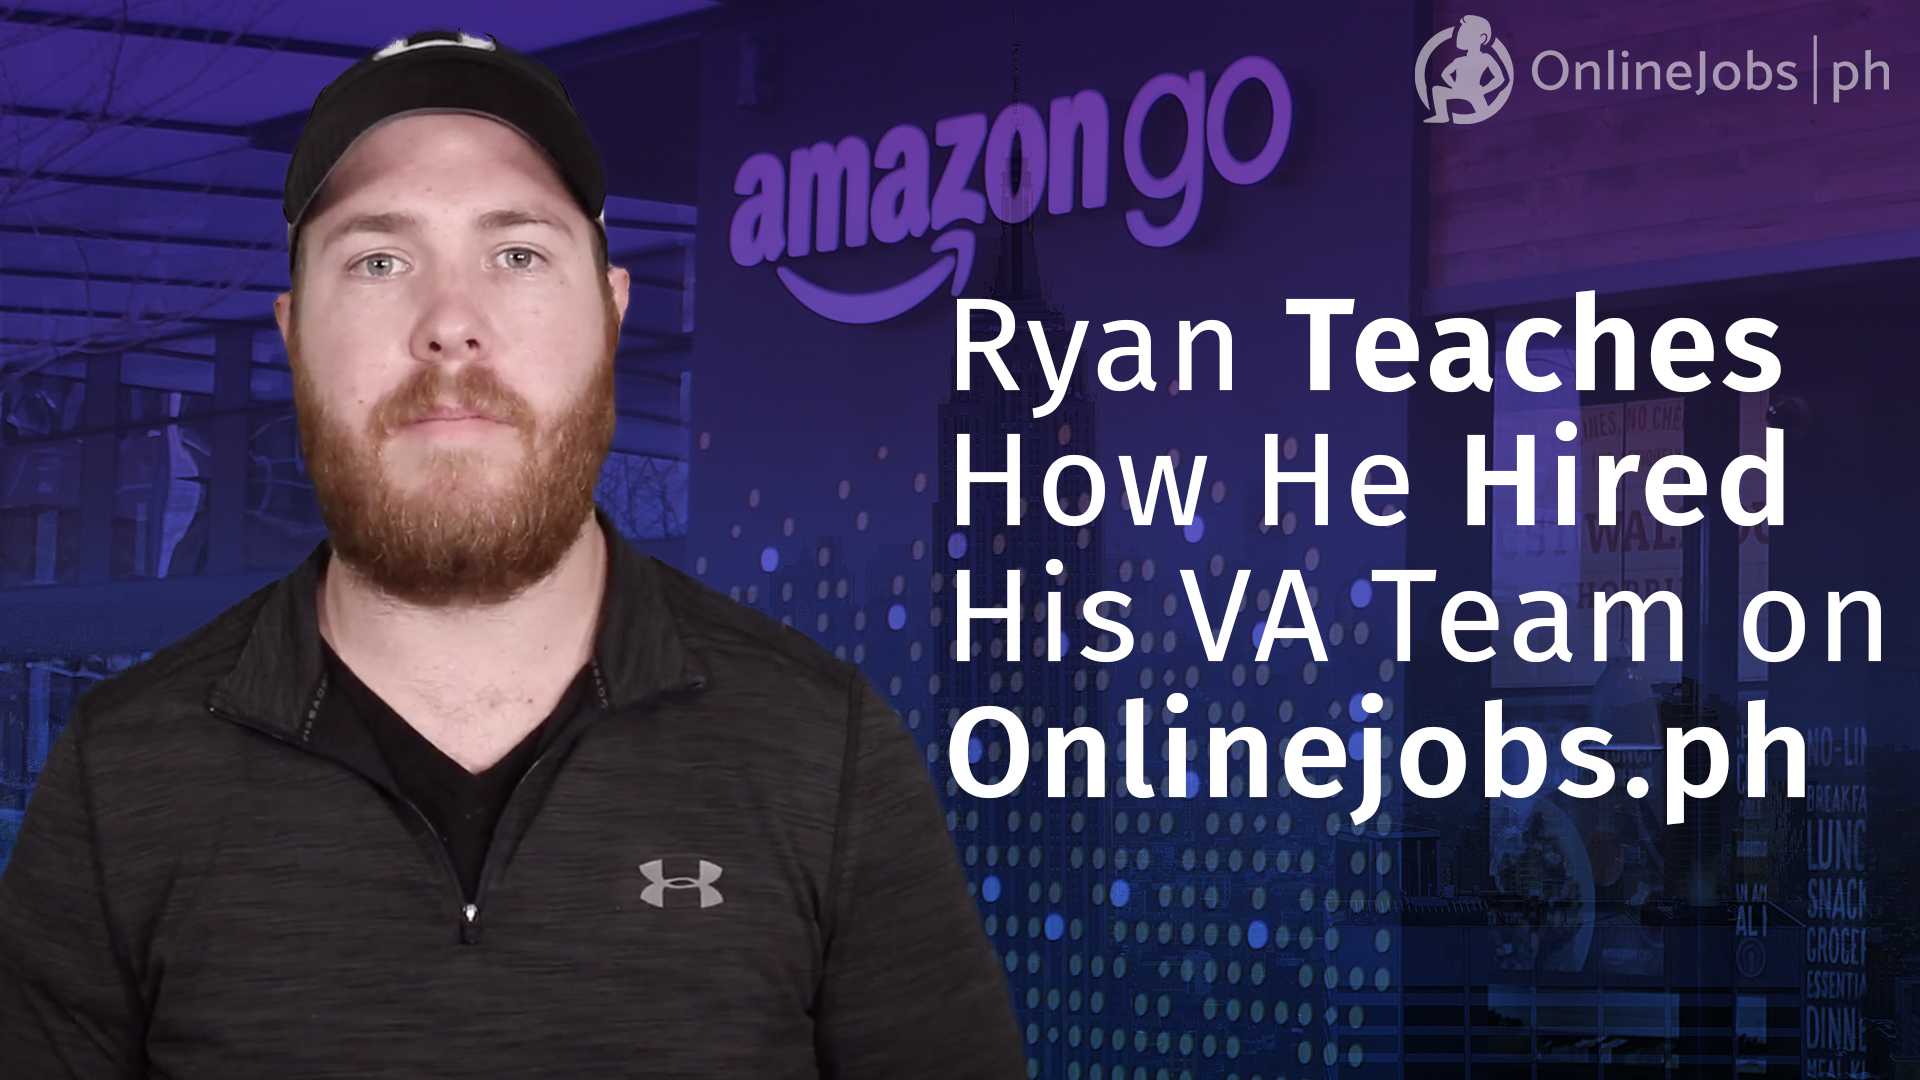 Ryan-Teaches-How-He-Hired-His-VA-Team-on-Onlinejobs.ph